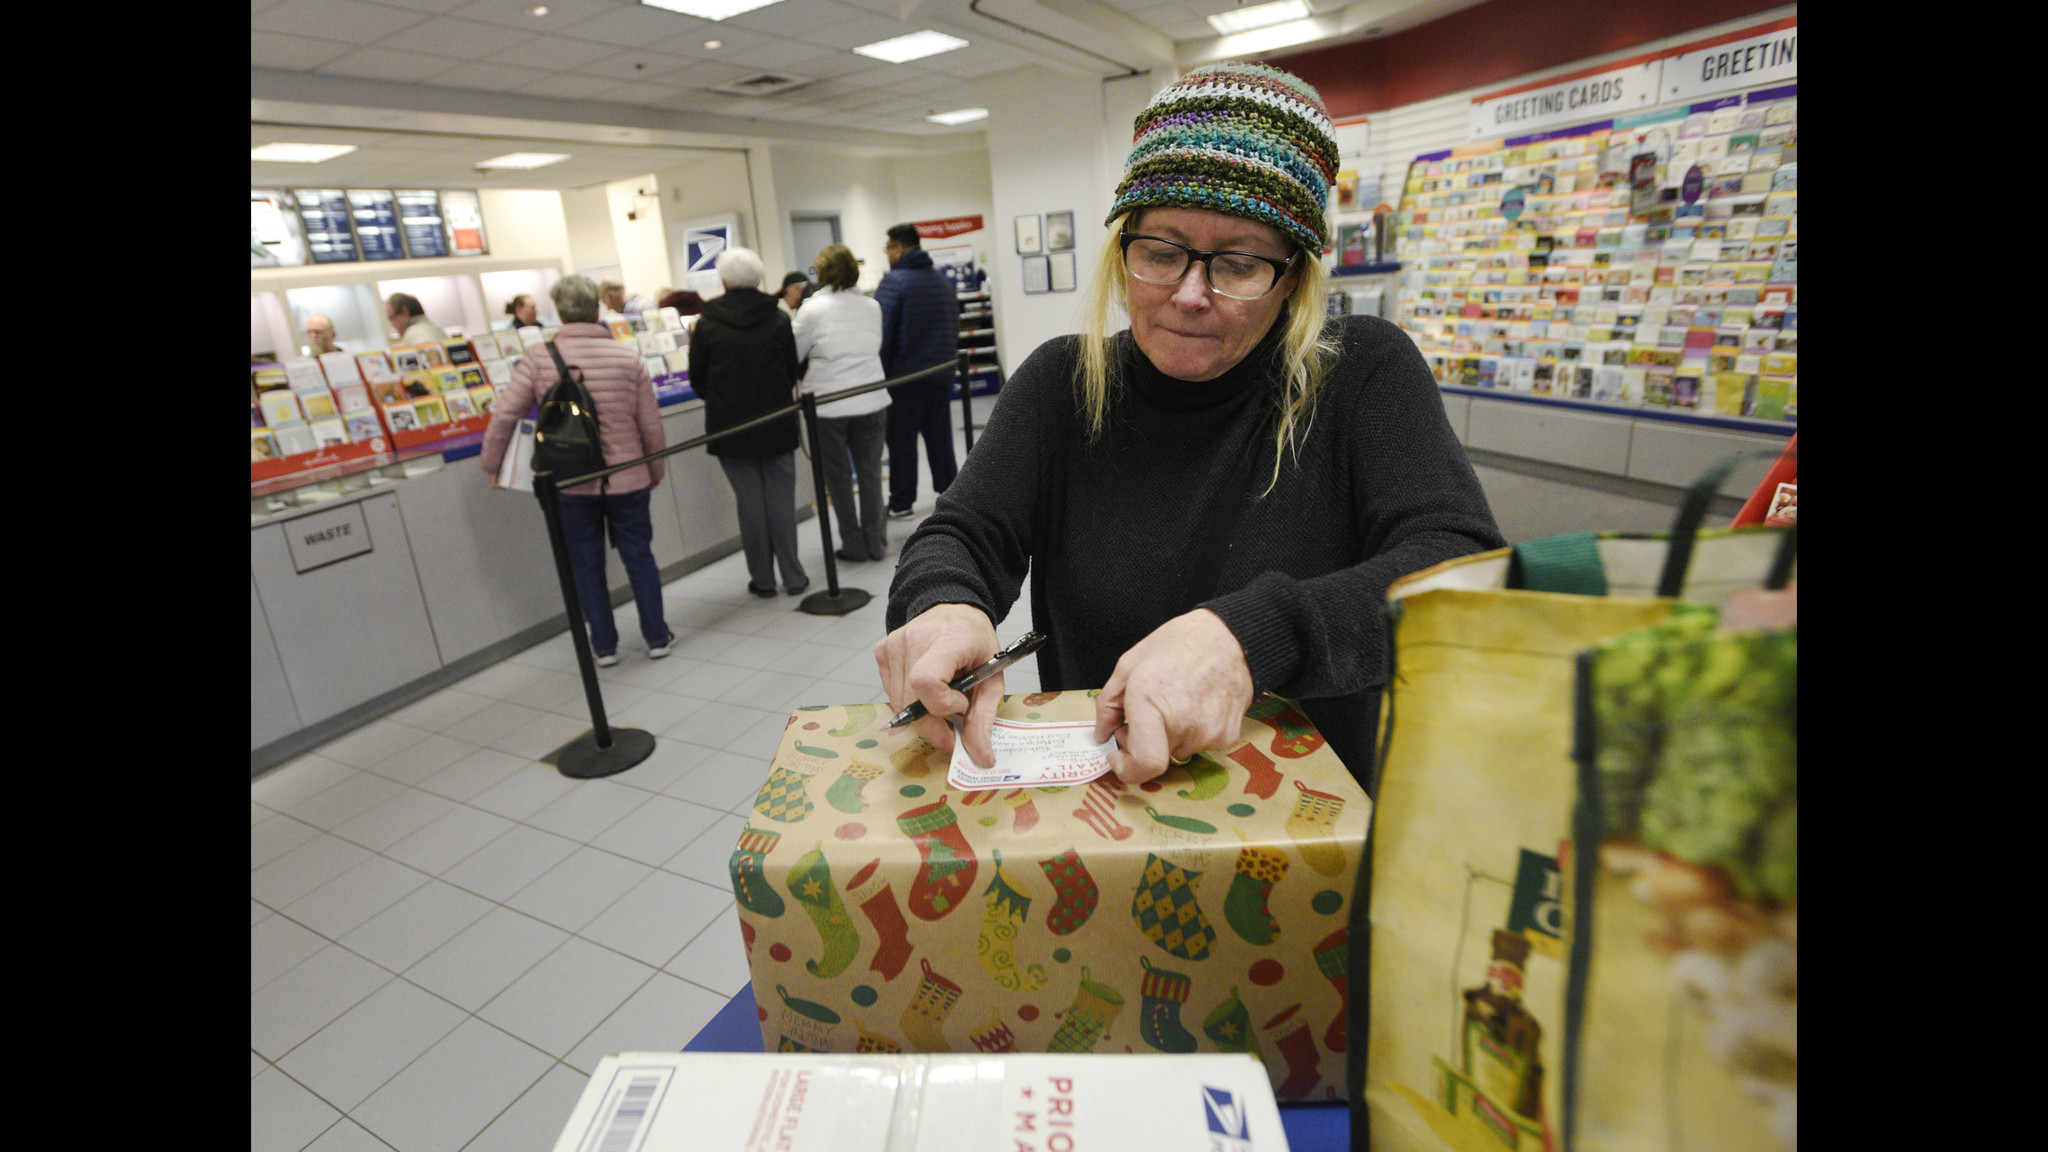 Westminster Post Office continues holiday hustle as